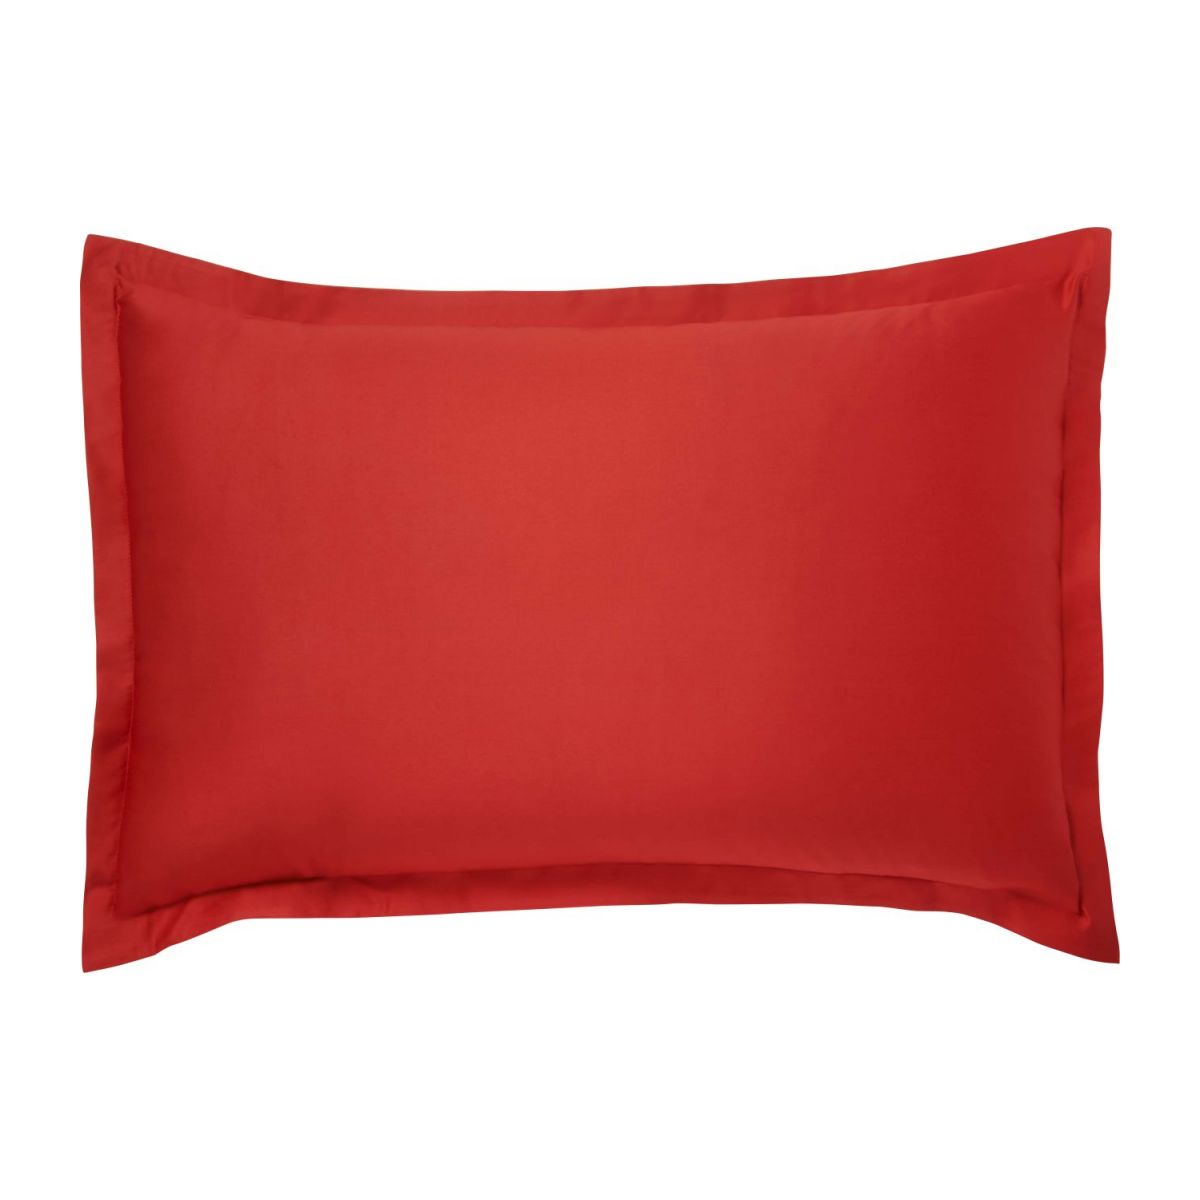 Pillowcase 50 x 80 cm, red n°2